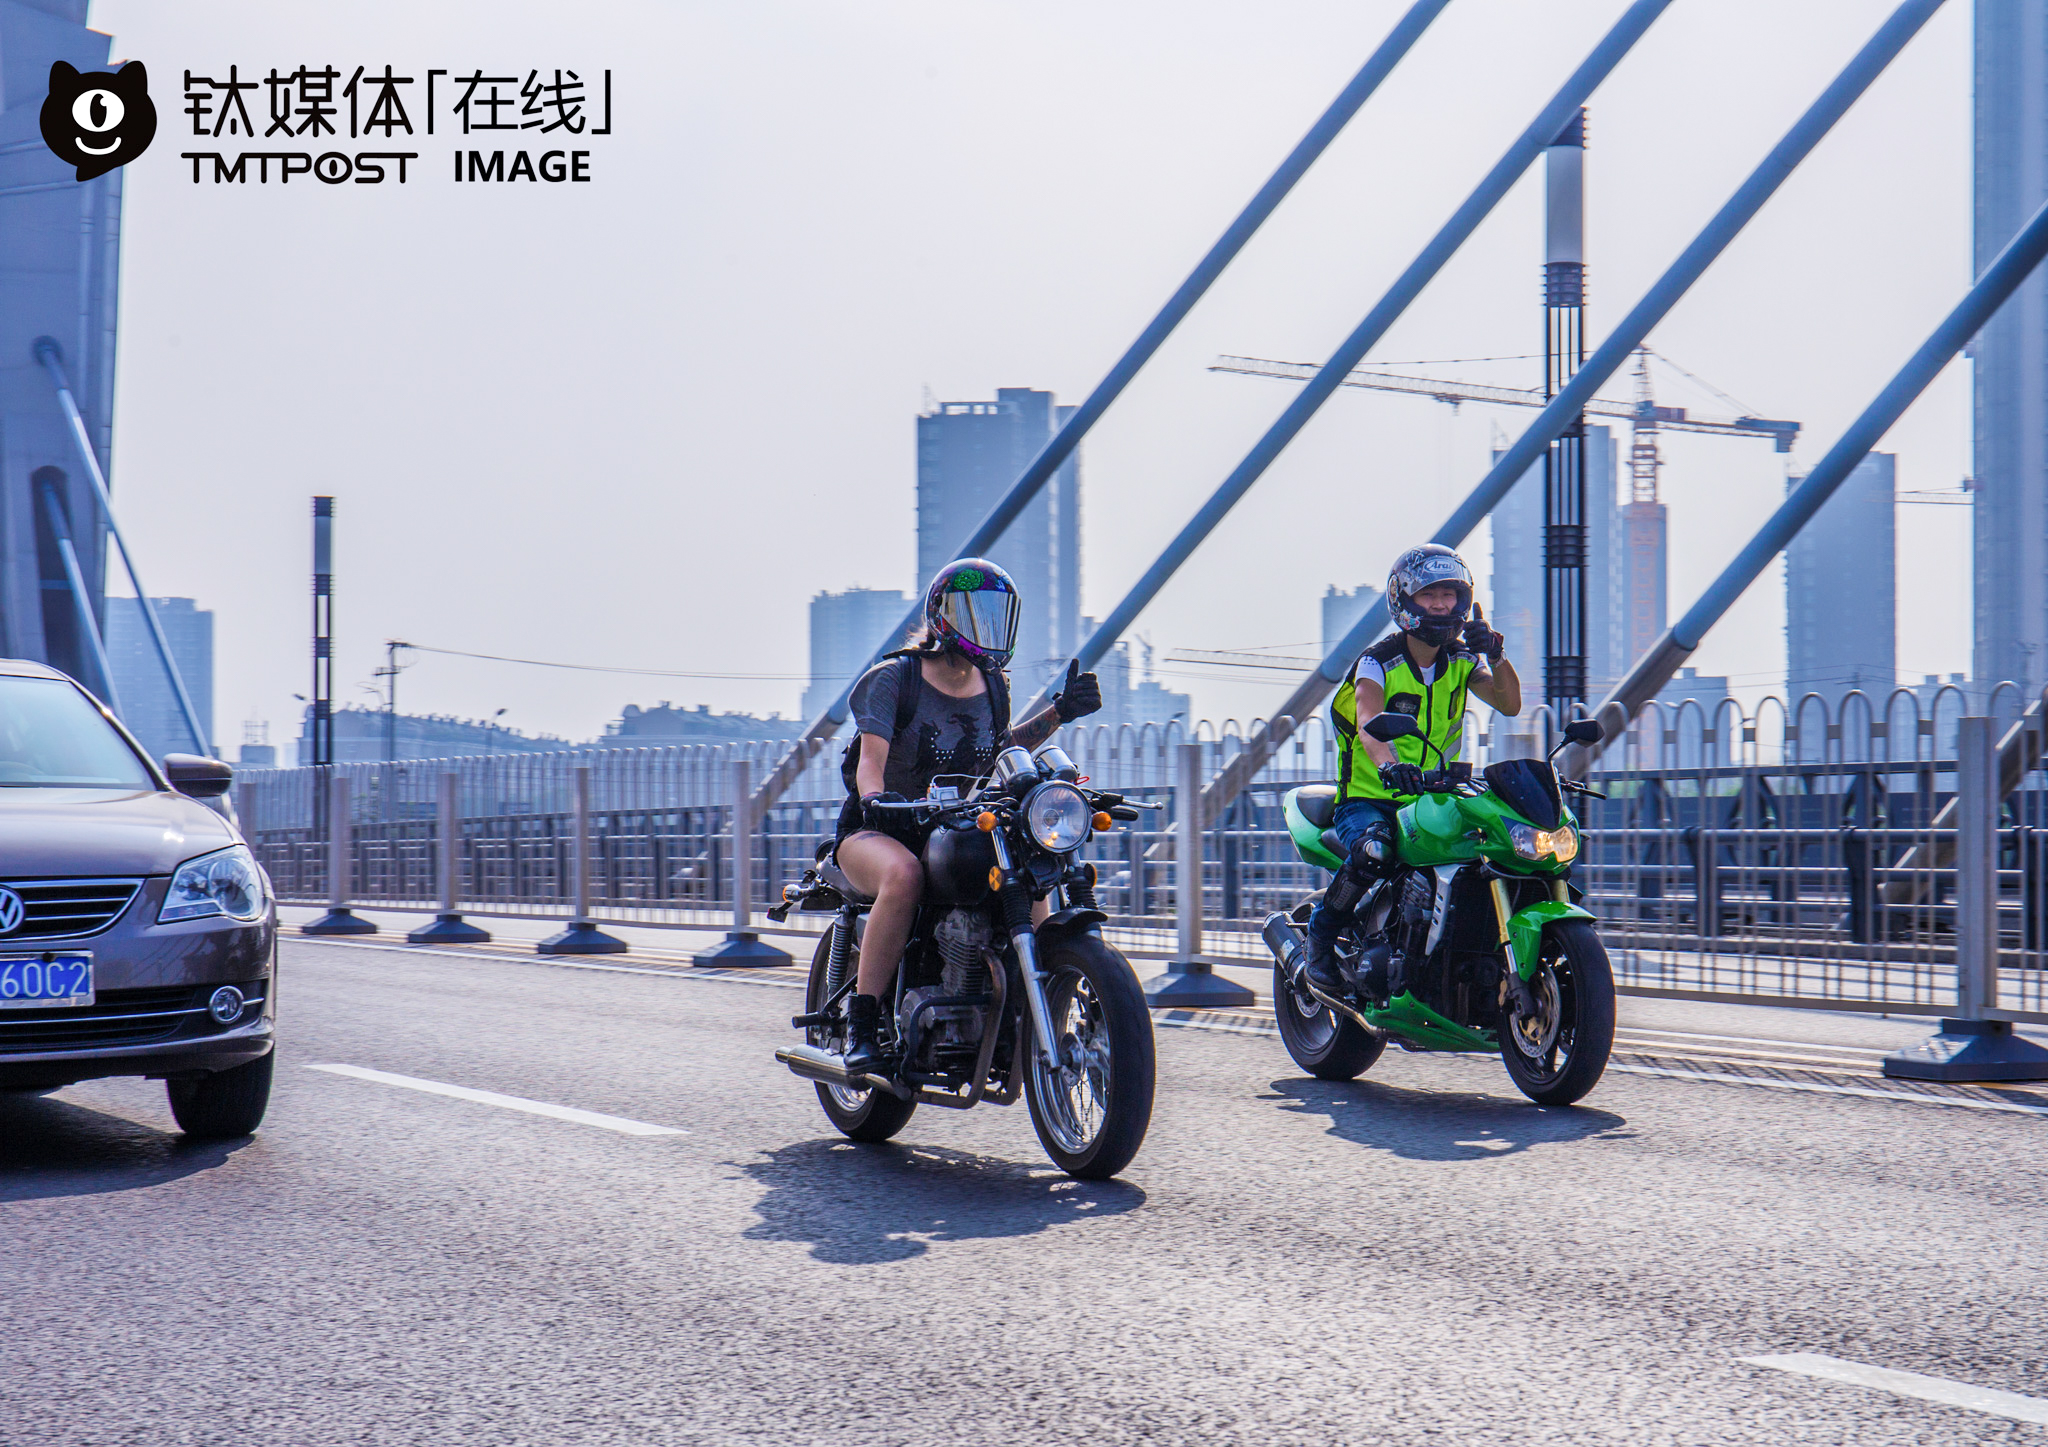 "Bu Yi (the motorcycle rider to the right of the picture) was riding on the Tongzhou north Tunnel Bridge, and showing his greetings to another motorcycle rider he encountered on the road. ""If other motorcycle riders found that I didn't wear protective clothing or ride on the wrong road, they would approach and barge me,"" he explained. For him, strict intendance among motorcycle riders will not only improve our safety awareness, but also improve the riding environment for motorcycle riders, and this is what he referred to as the ""rider spirit"". According to transportation rules in Beijing, riders could ride motorcycles with Beijing-A plate inside Beijing, but they could not ride motorcycles with Beijing-B plate inside the fourth ring."